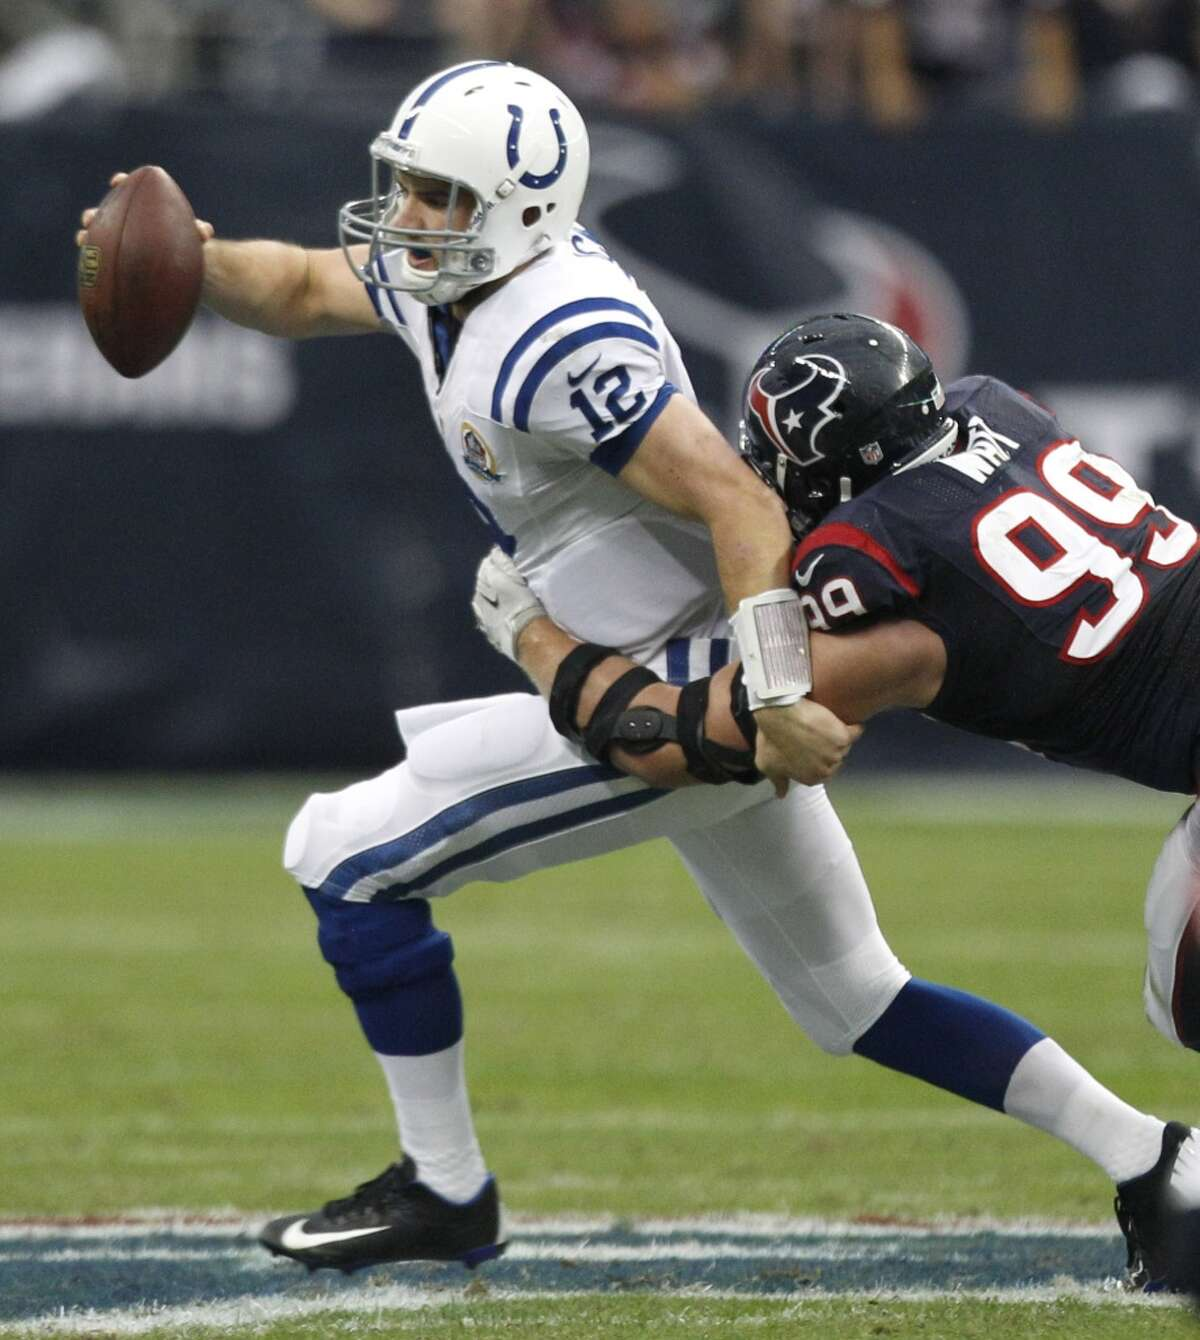 Dec. 16, 2012: 29-17 win vs. Indianapolis In a win that clinched the AFC South title, Watt recorded just the second double-digit tackle total of his career, finishing with 10 tackles and three sacks in the 29-17 win at home.